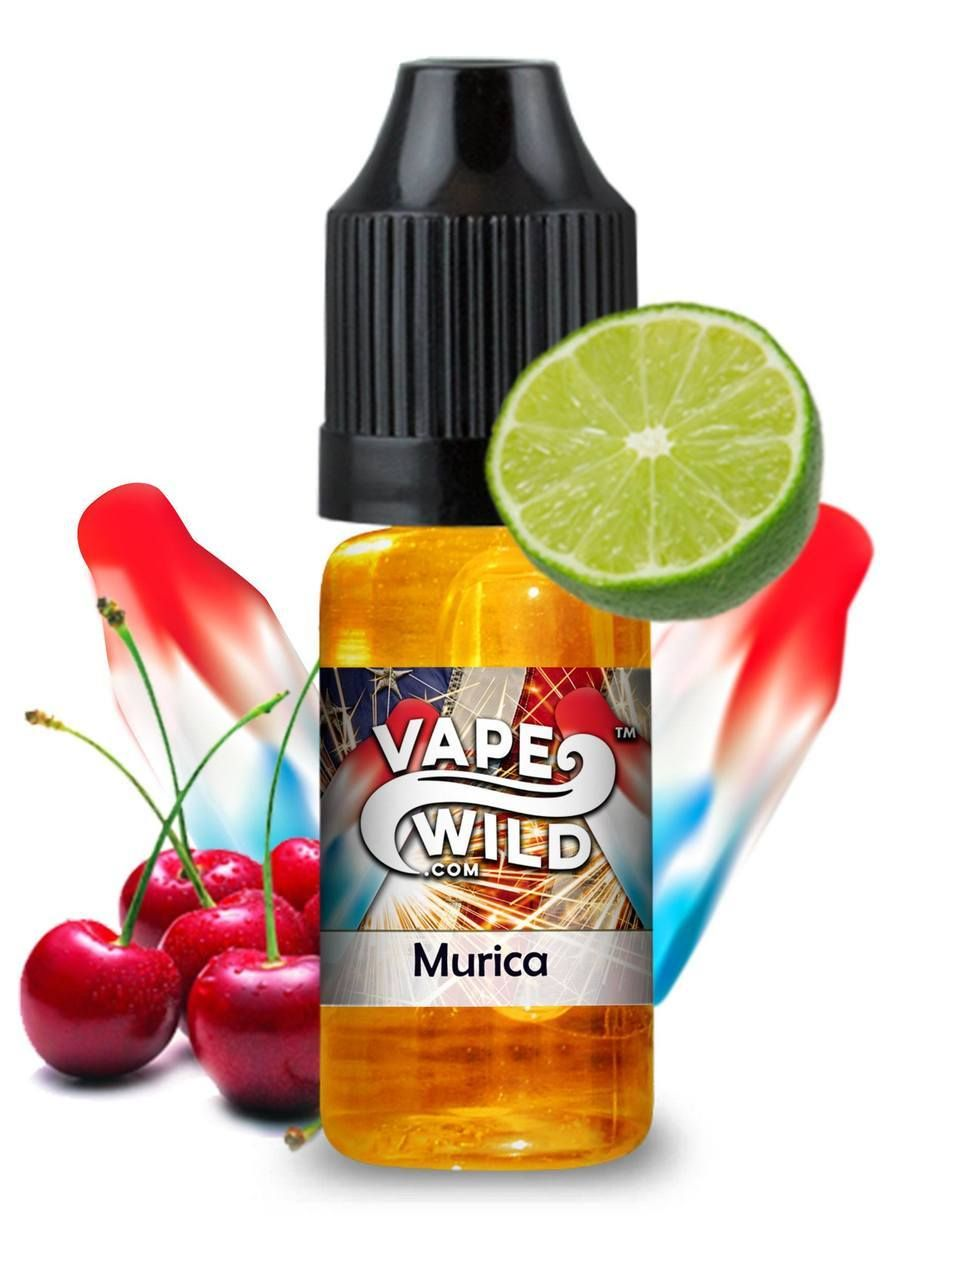 Murica | Vapes and vape oil | Vape juice, Juice, Juice flavors